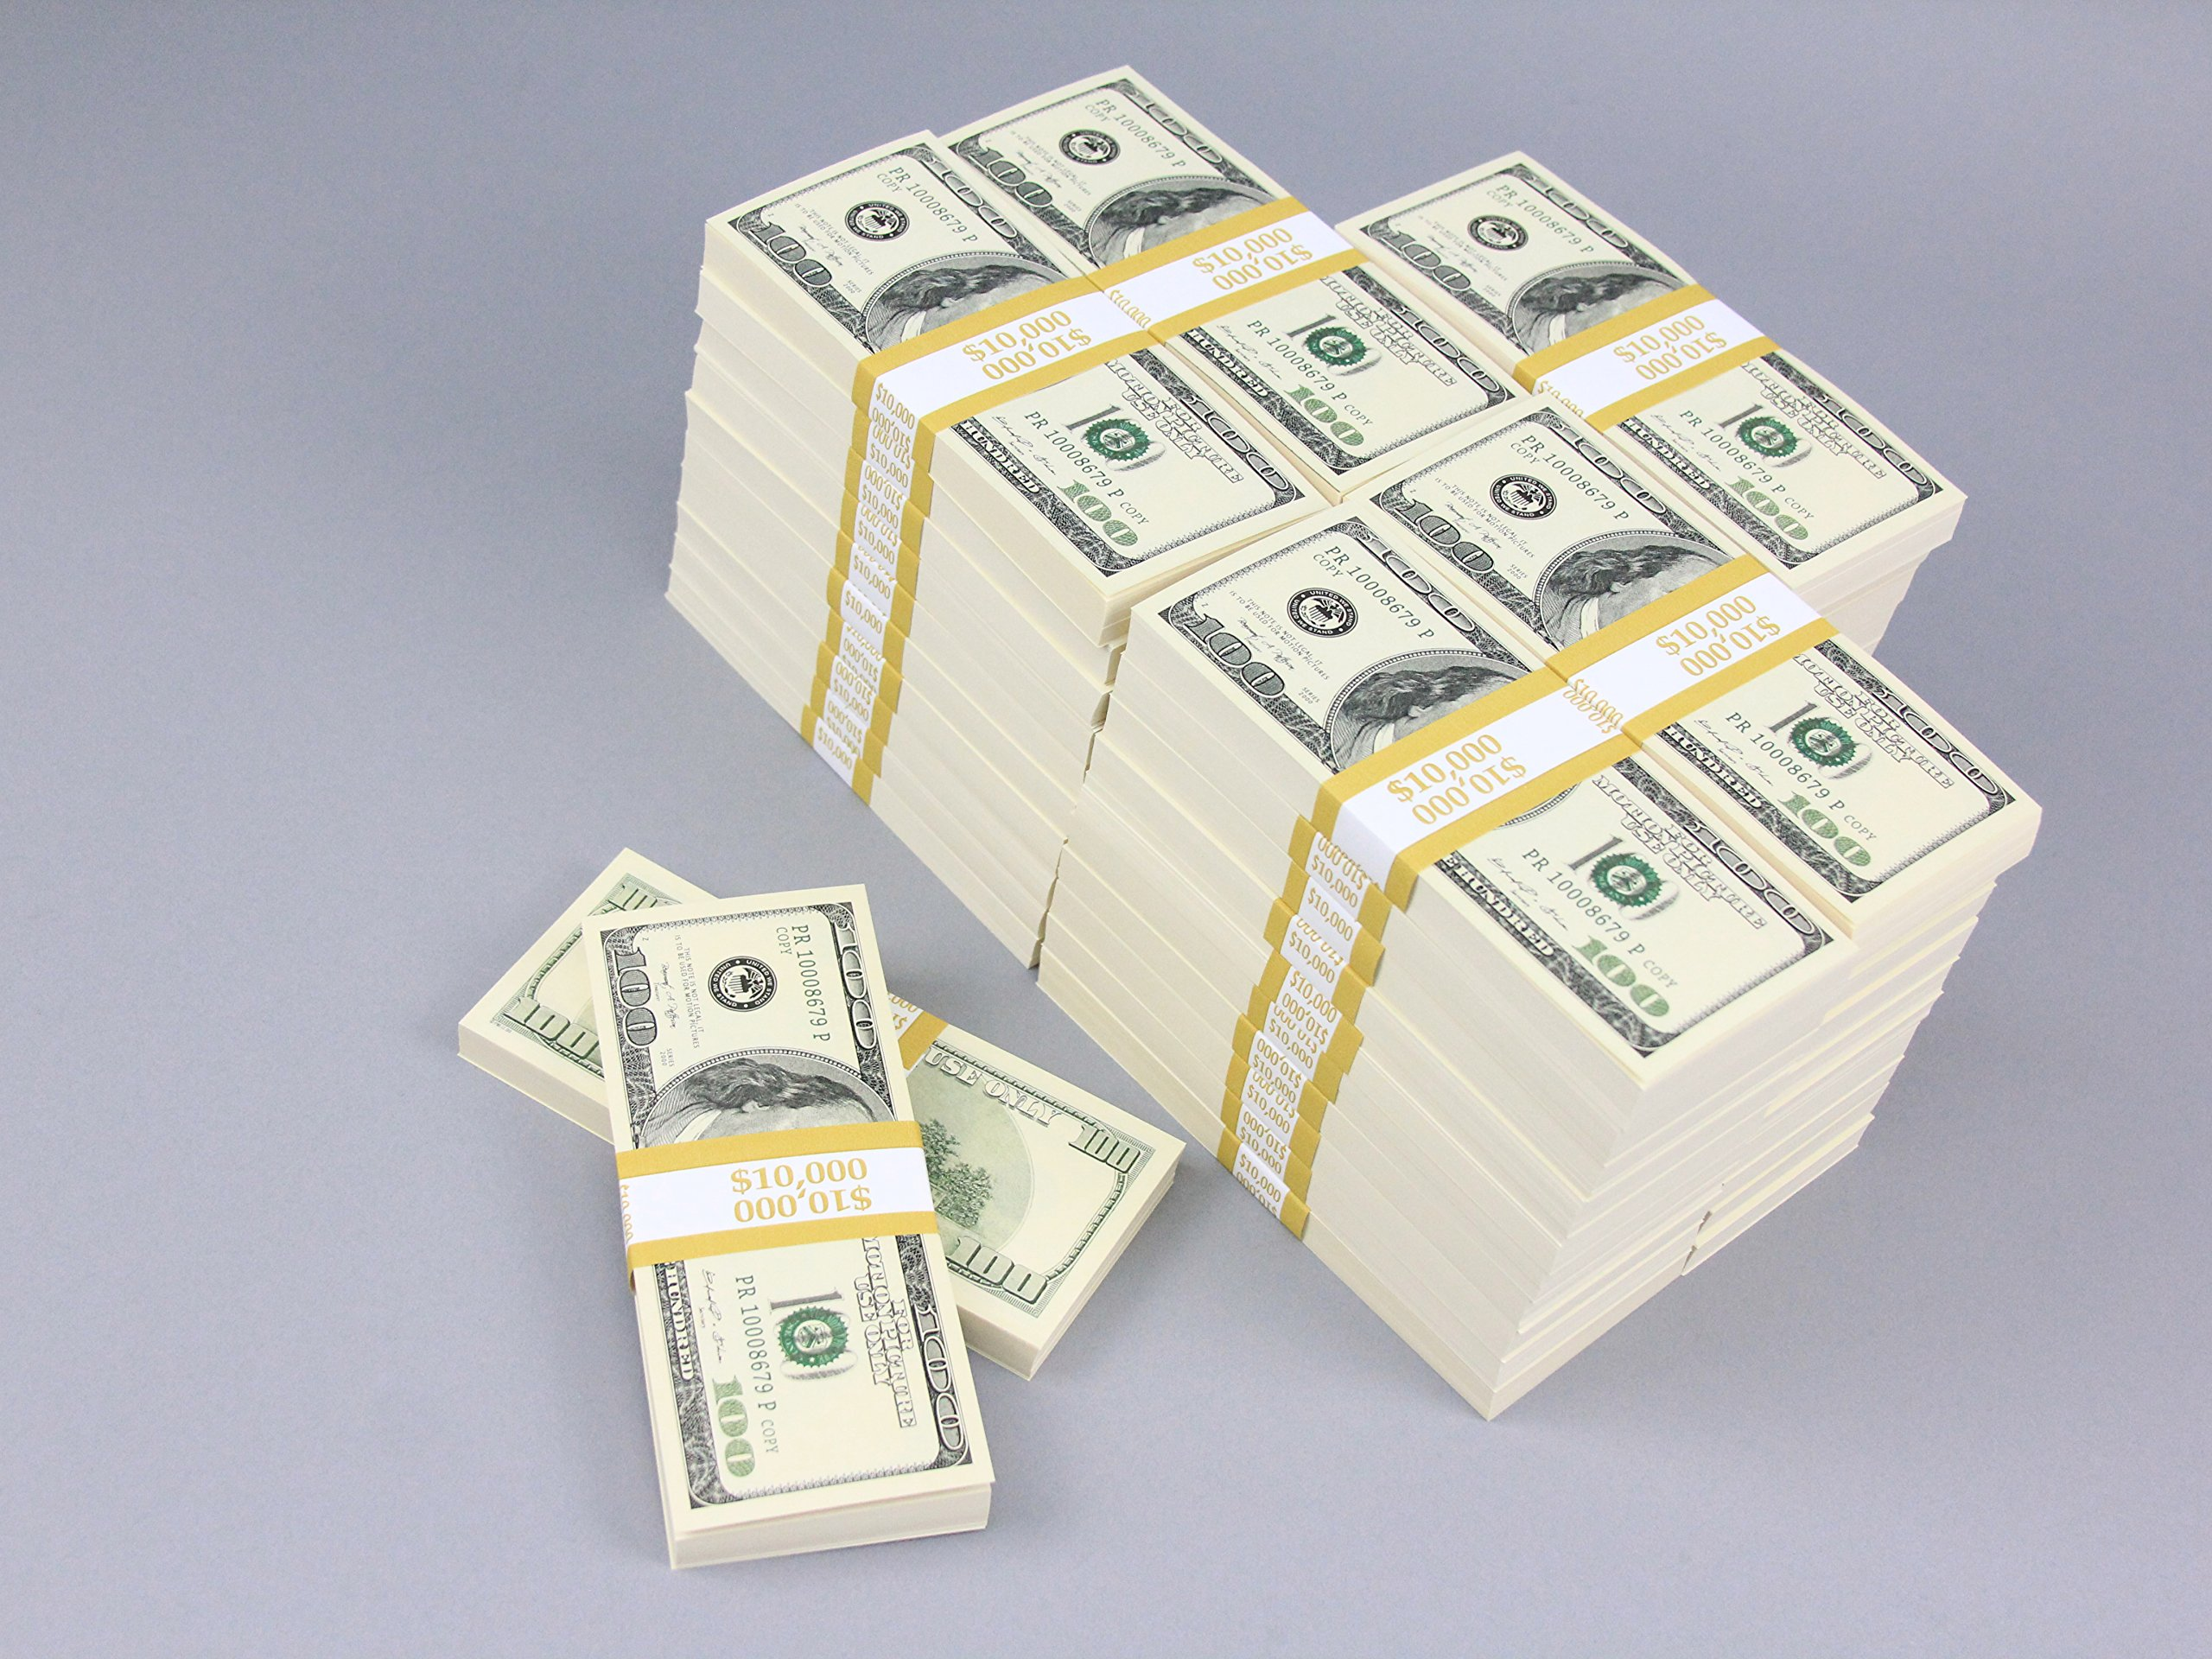 PROP MONEY Real Looking Copy $100s Pack - BLANK FILLERS Total $500,000 for Movie, TV, Videos, Advertising & Novelty